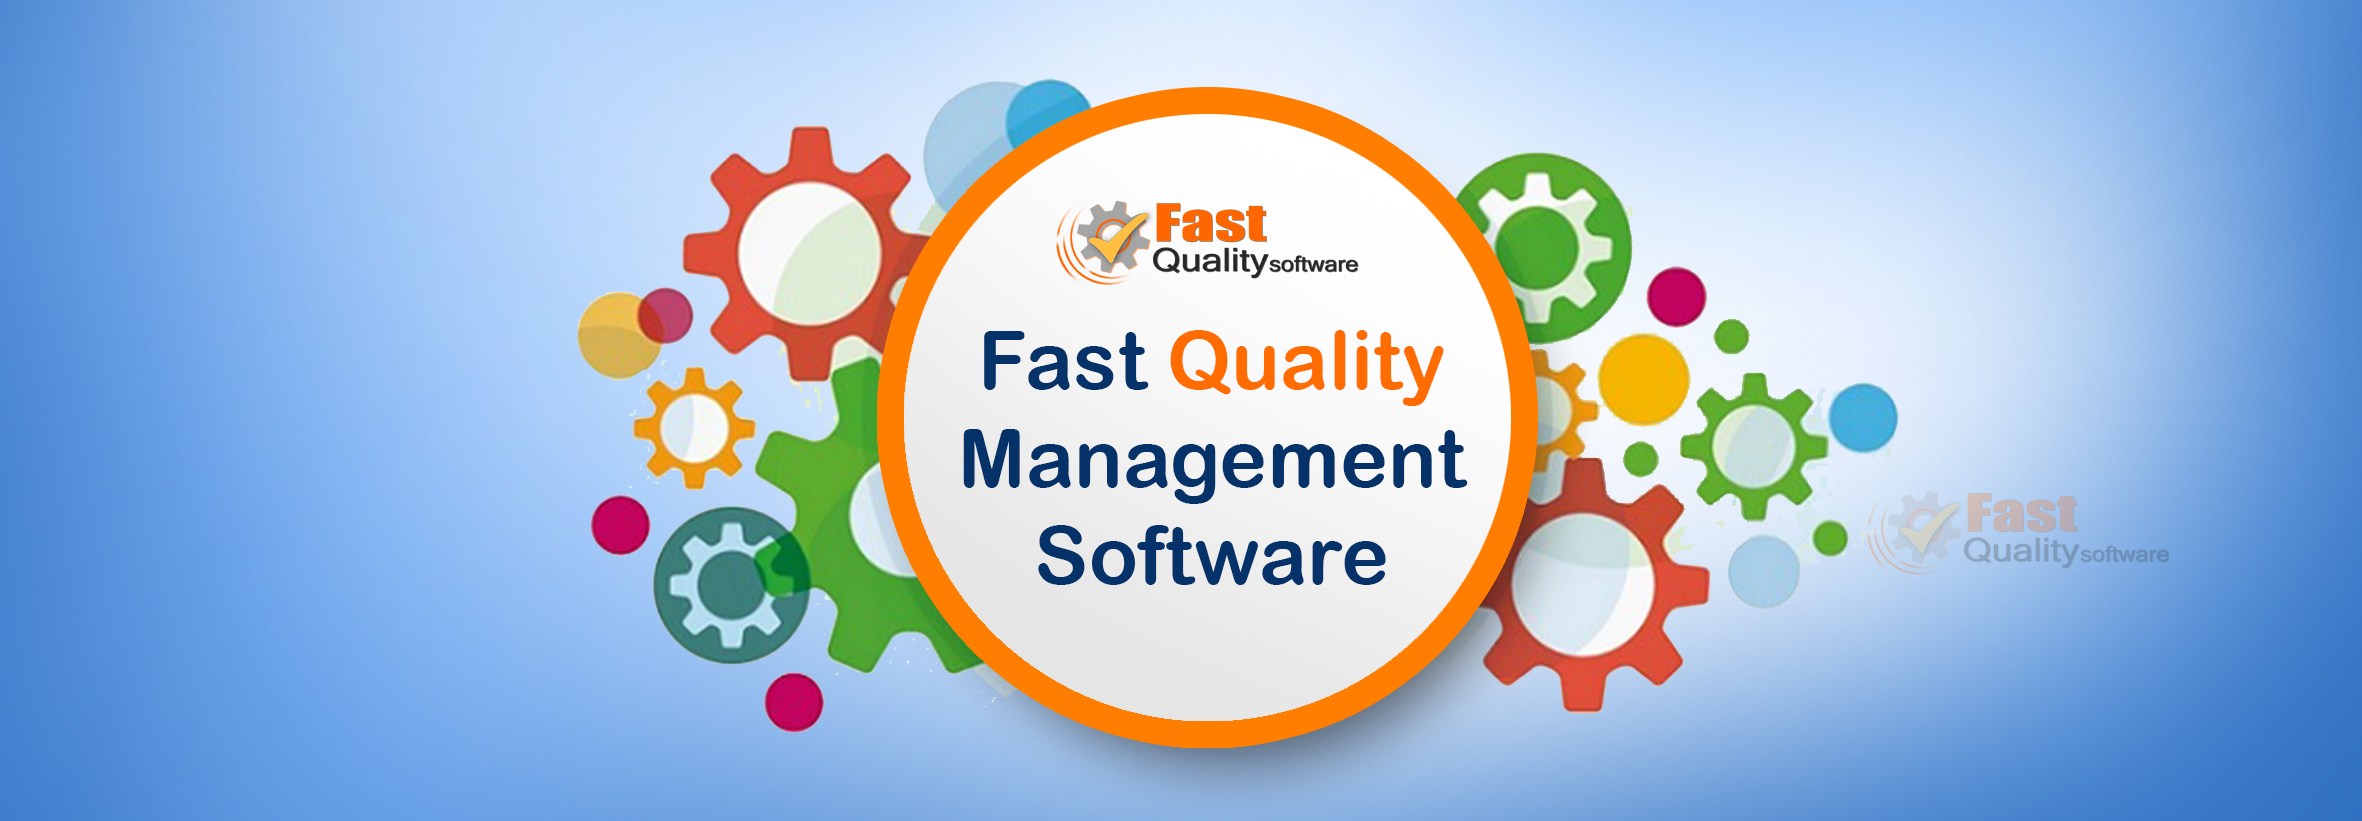 Fast Quality Management